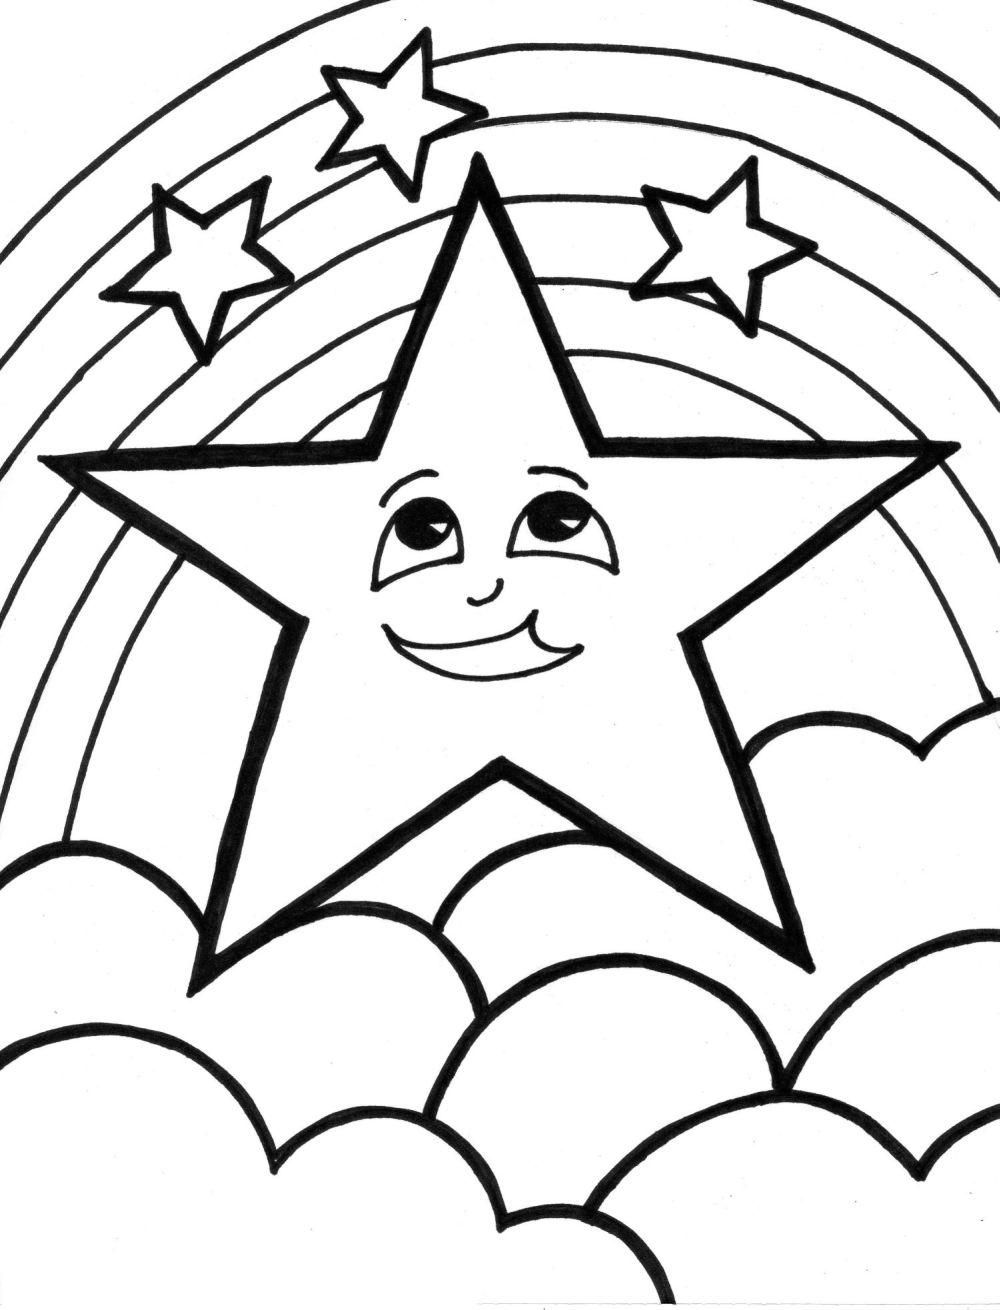 Free Printable Star Coloring Pages For Kids Star Coloring Pages Shape Coloring Pages Free Coloring Pages